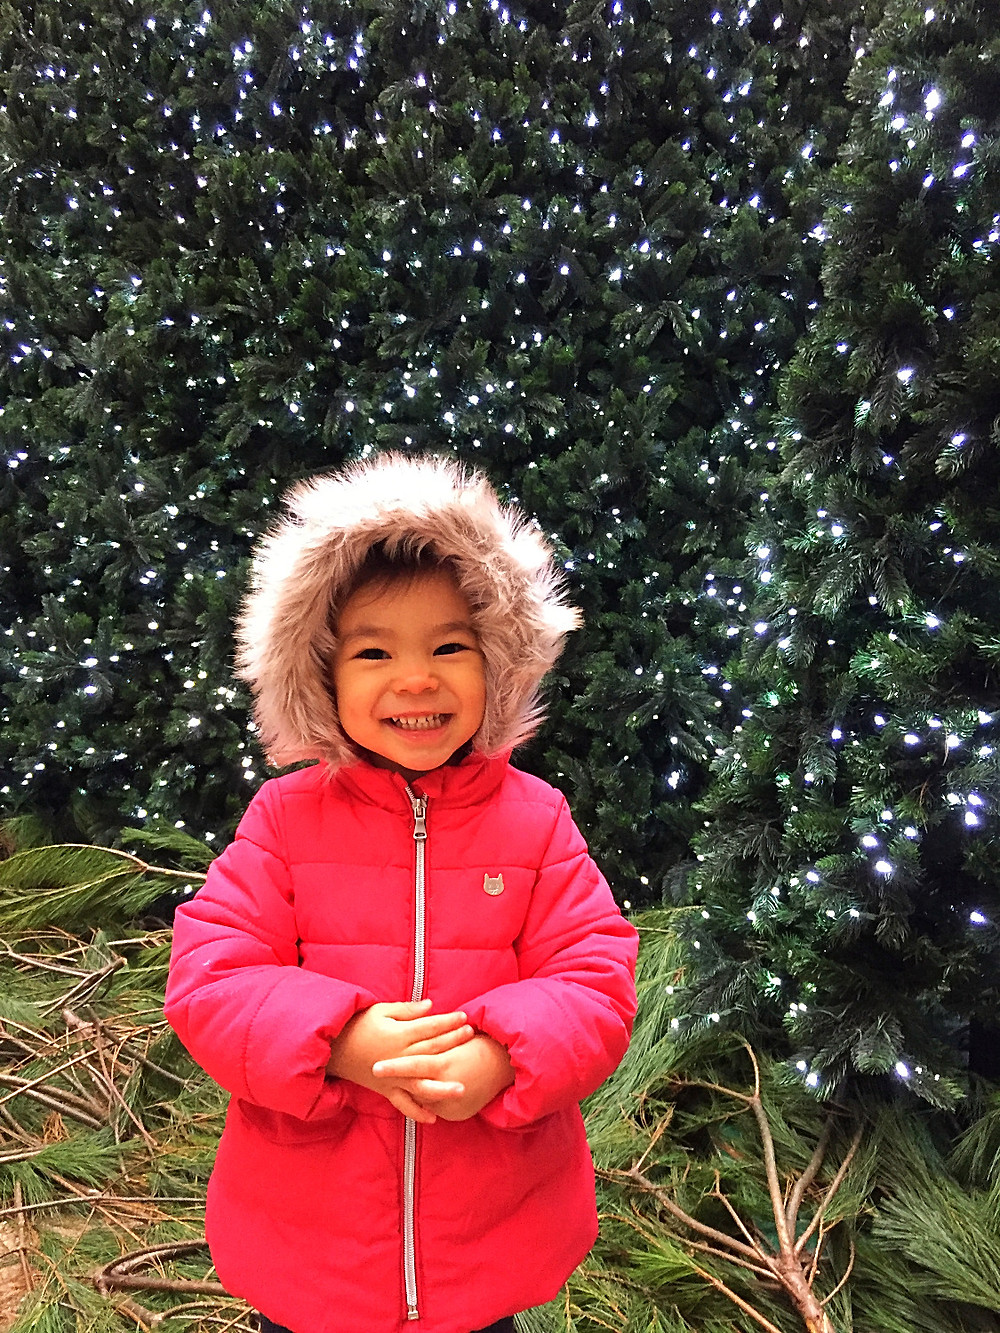 Bloomberg Tower Christmas Tree, Best Christmas Tree in NYC,Holiday Bucket List, Fun things to do in NYC for the holidays with your kids, Instagram Bait, Holiday Pop Up, NYC Pop Up, Free in NYC, Curious G and Me, NYC family, NYC with kids, NYC Christmas, Bloomingdale's